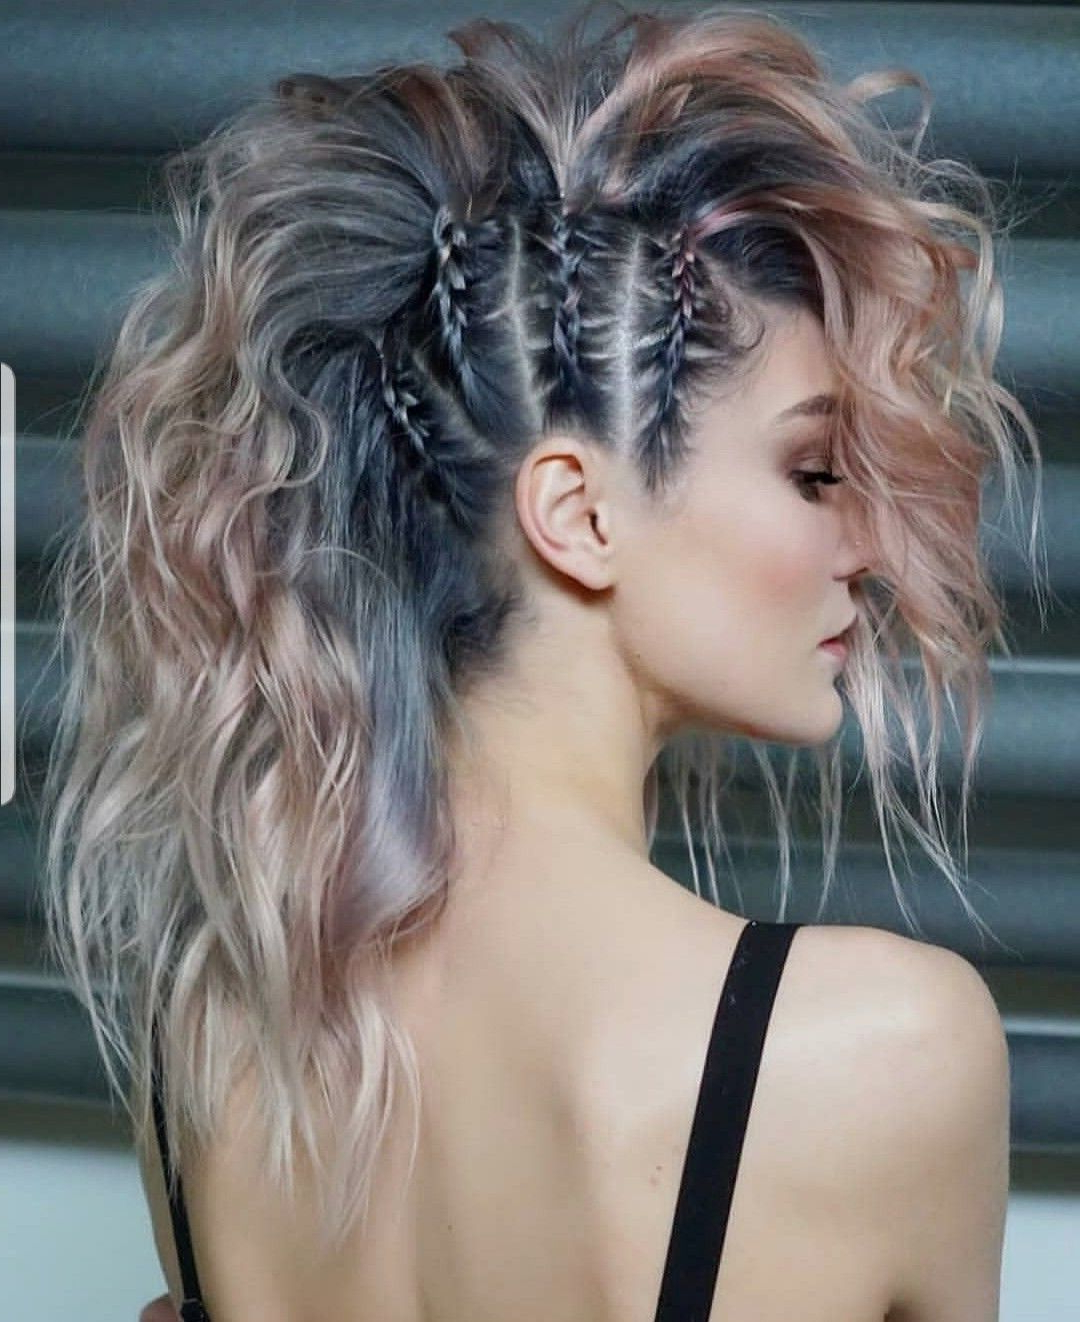 Hair Styles, Curly Hair Throughout Most Recent Teased Long Hair Mohawk Hairstyles (View 3 of 20)